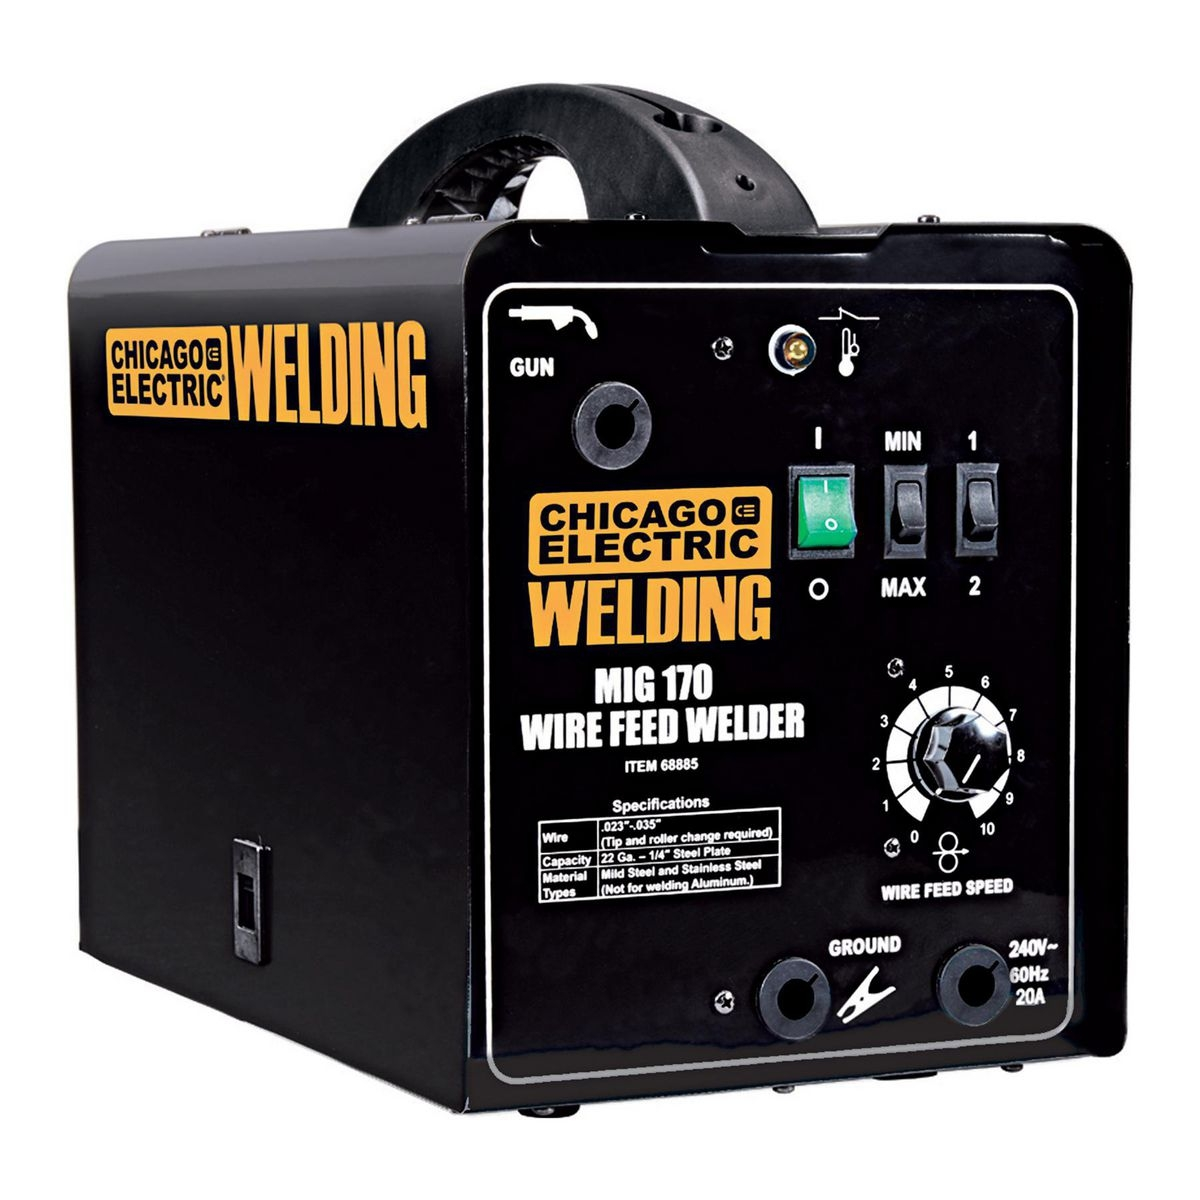 170 Amp-DC, 240 Volt, MIG/Flux Cored Welder on tig welder wiring diagram, mig welder regulator, mig welder fuse diagram, mig 100 welder schematic diagram, capacitive discharge welder wiring diagram, mig welder motor, mig welder switch, mig welder parts, mig welder cover, chicago electric welder wiring diagram, miller welder wiring diagram, mig welder wire, dc welder wiring diagram, arc welder wiring diagram, mig welder cable, mig welder capacitor, 220 welder wiring diagram, mig welder assembly, mig welder valves, hobart welder wiring diagram,